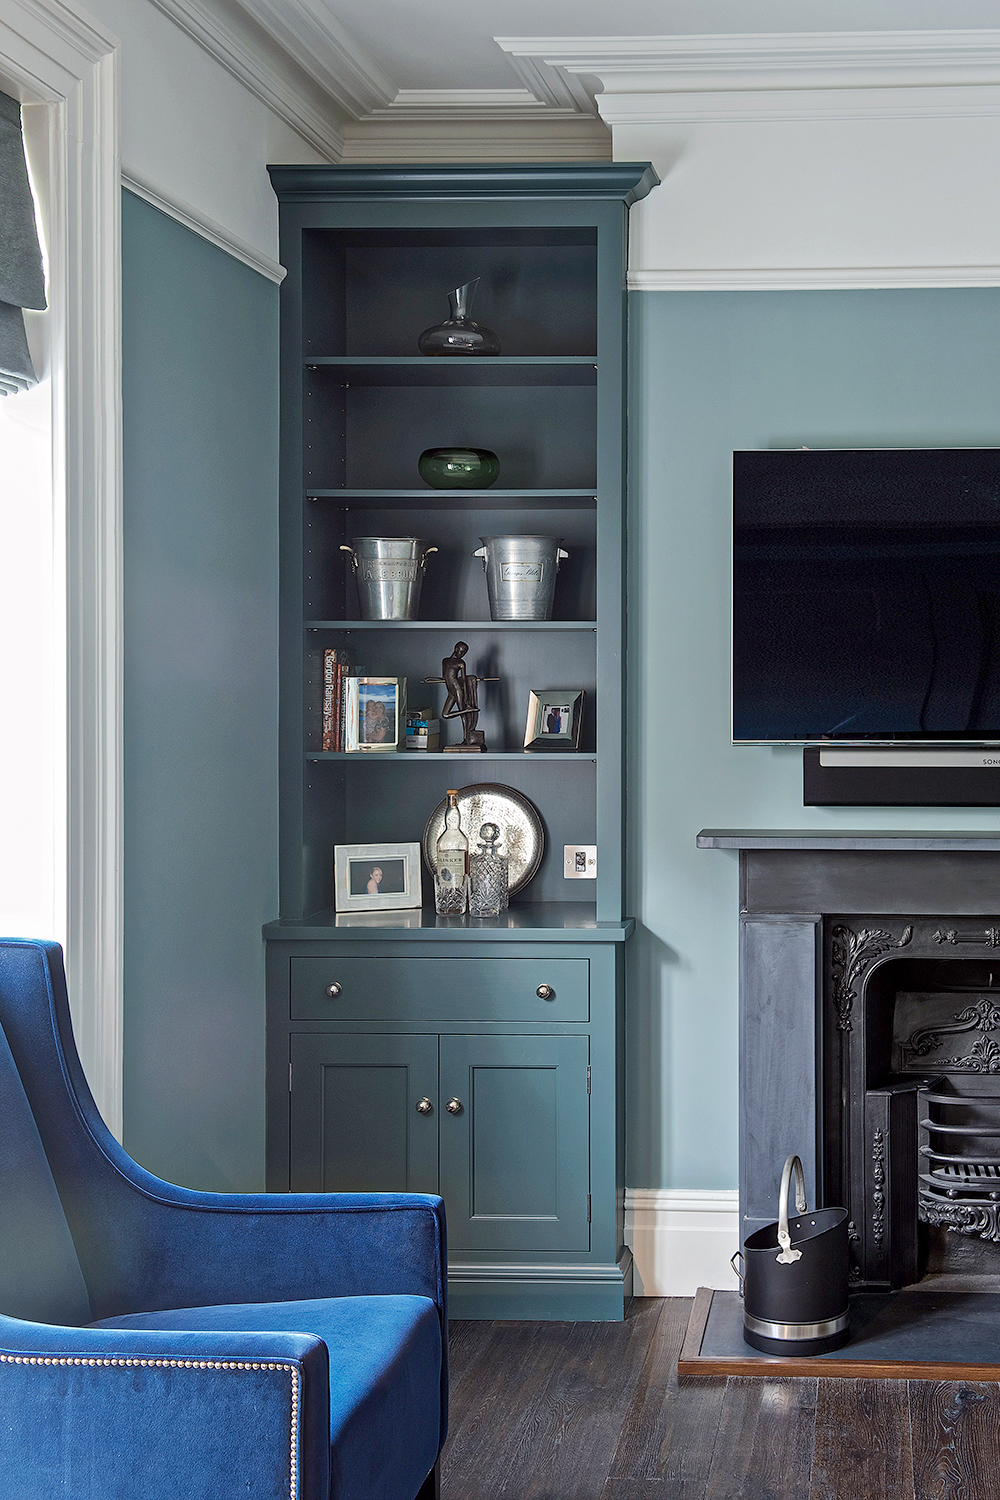 Built in alcove cabinet with drawers and cupboards and open shelves painted blue with chrome handles next to fireplace.